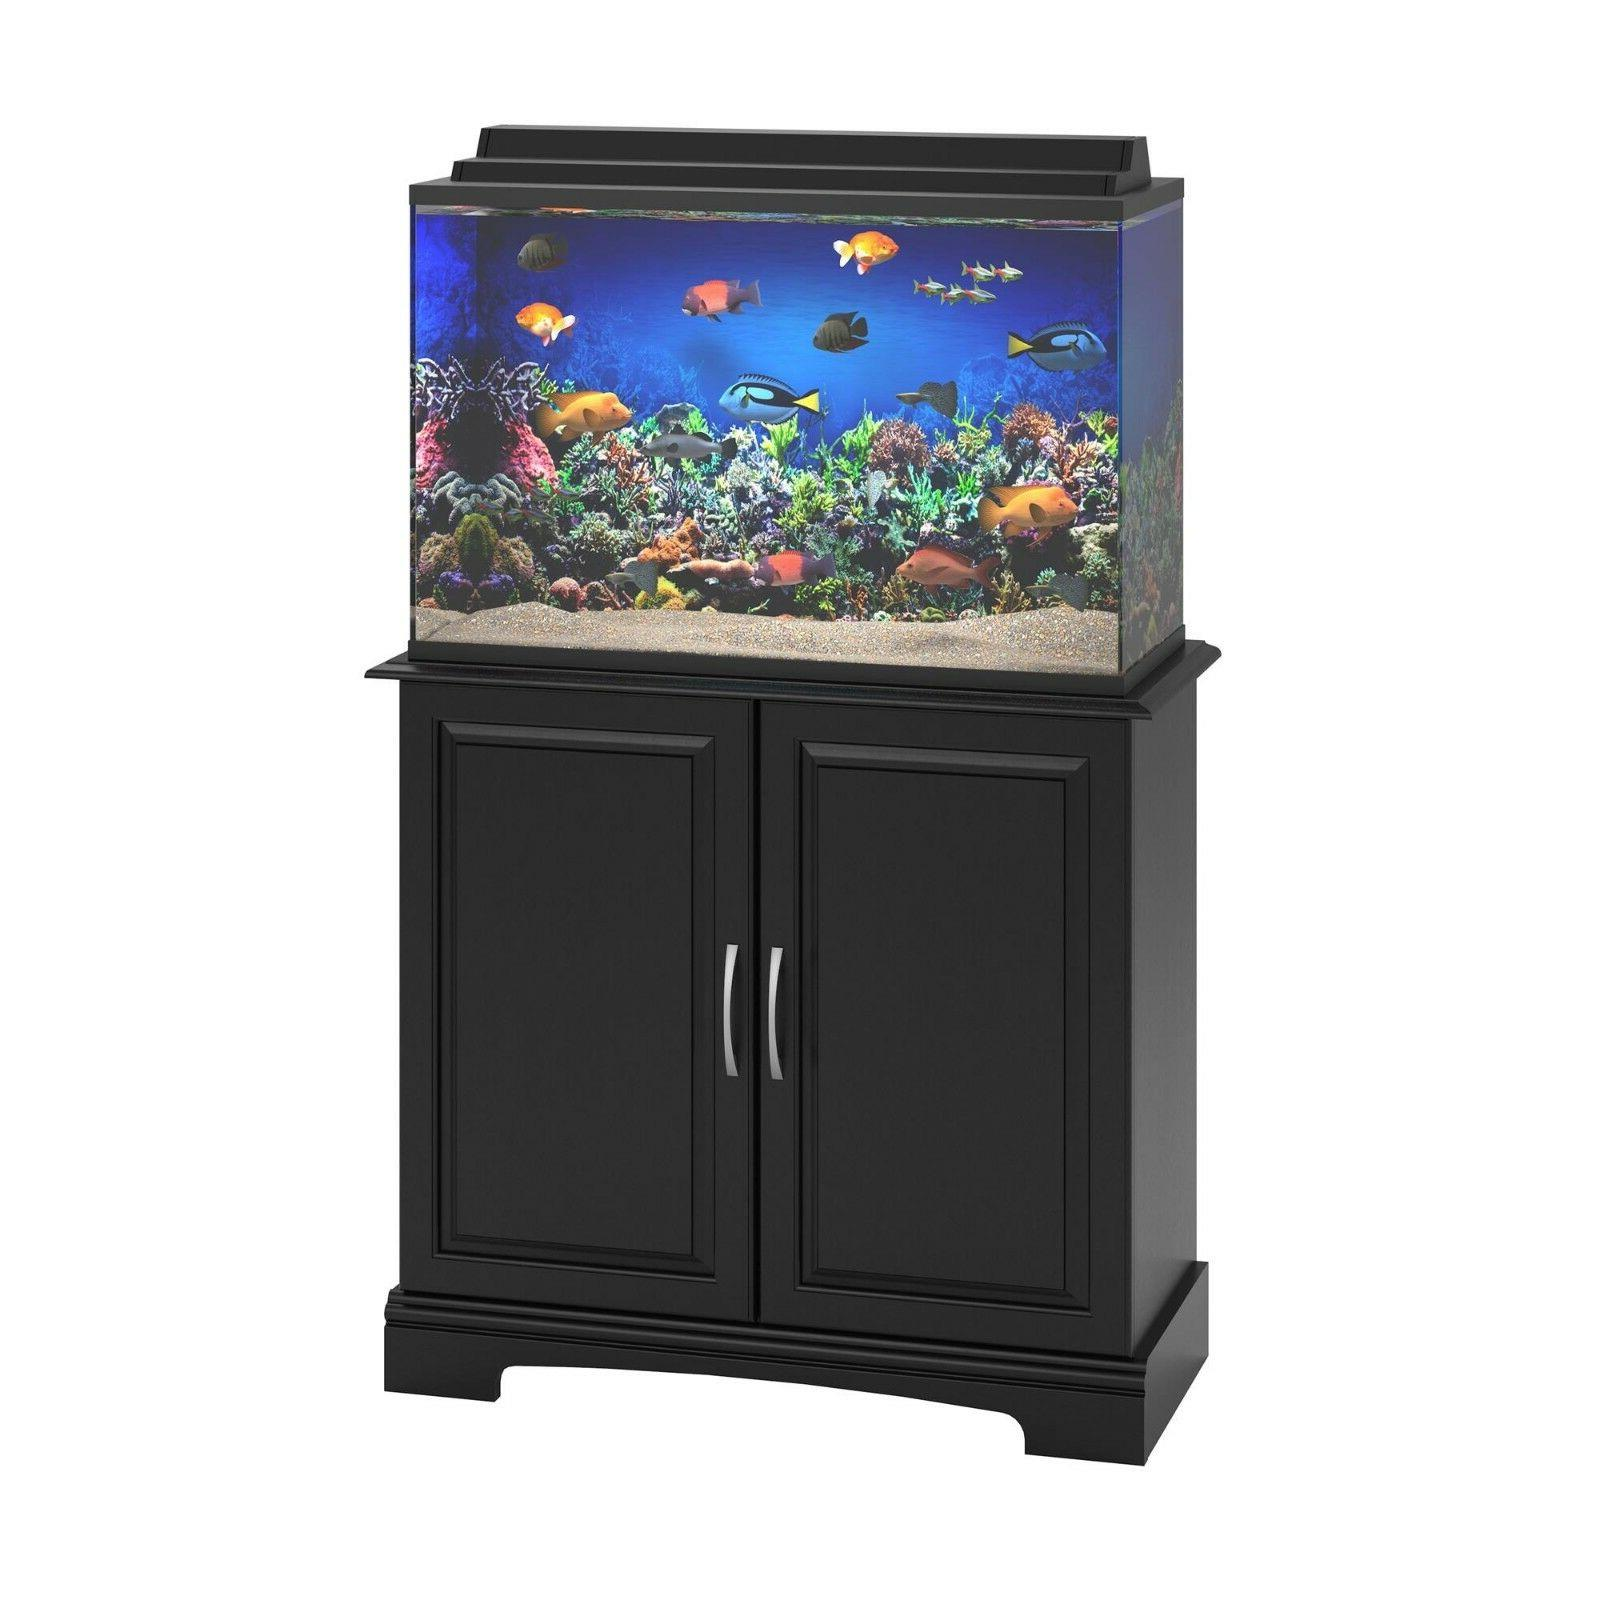 29-37 Gallon Aquarium Stand Fish Tank Holder Black Furniture Rack